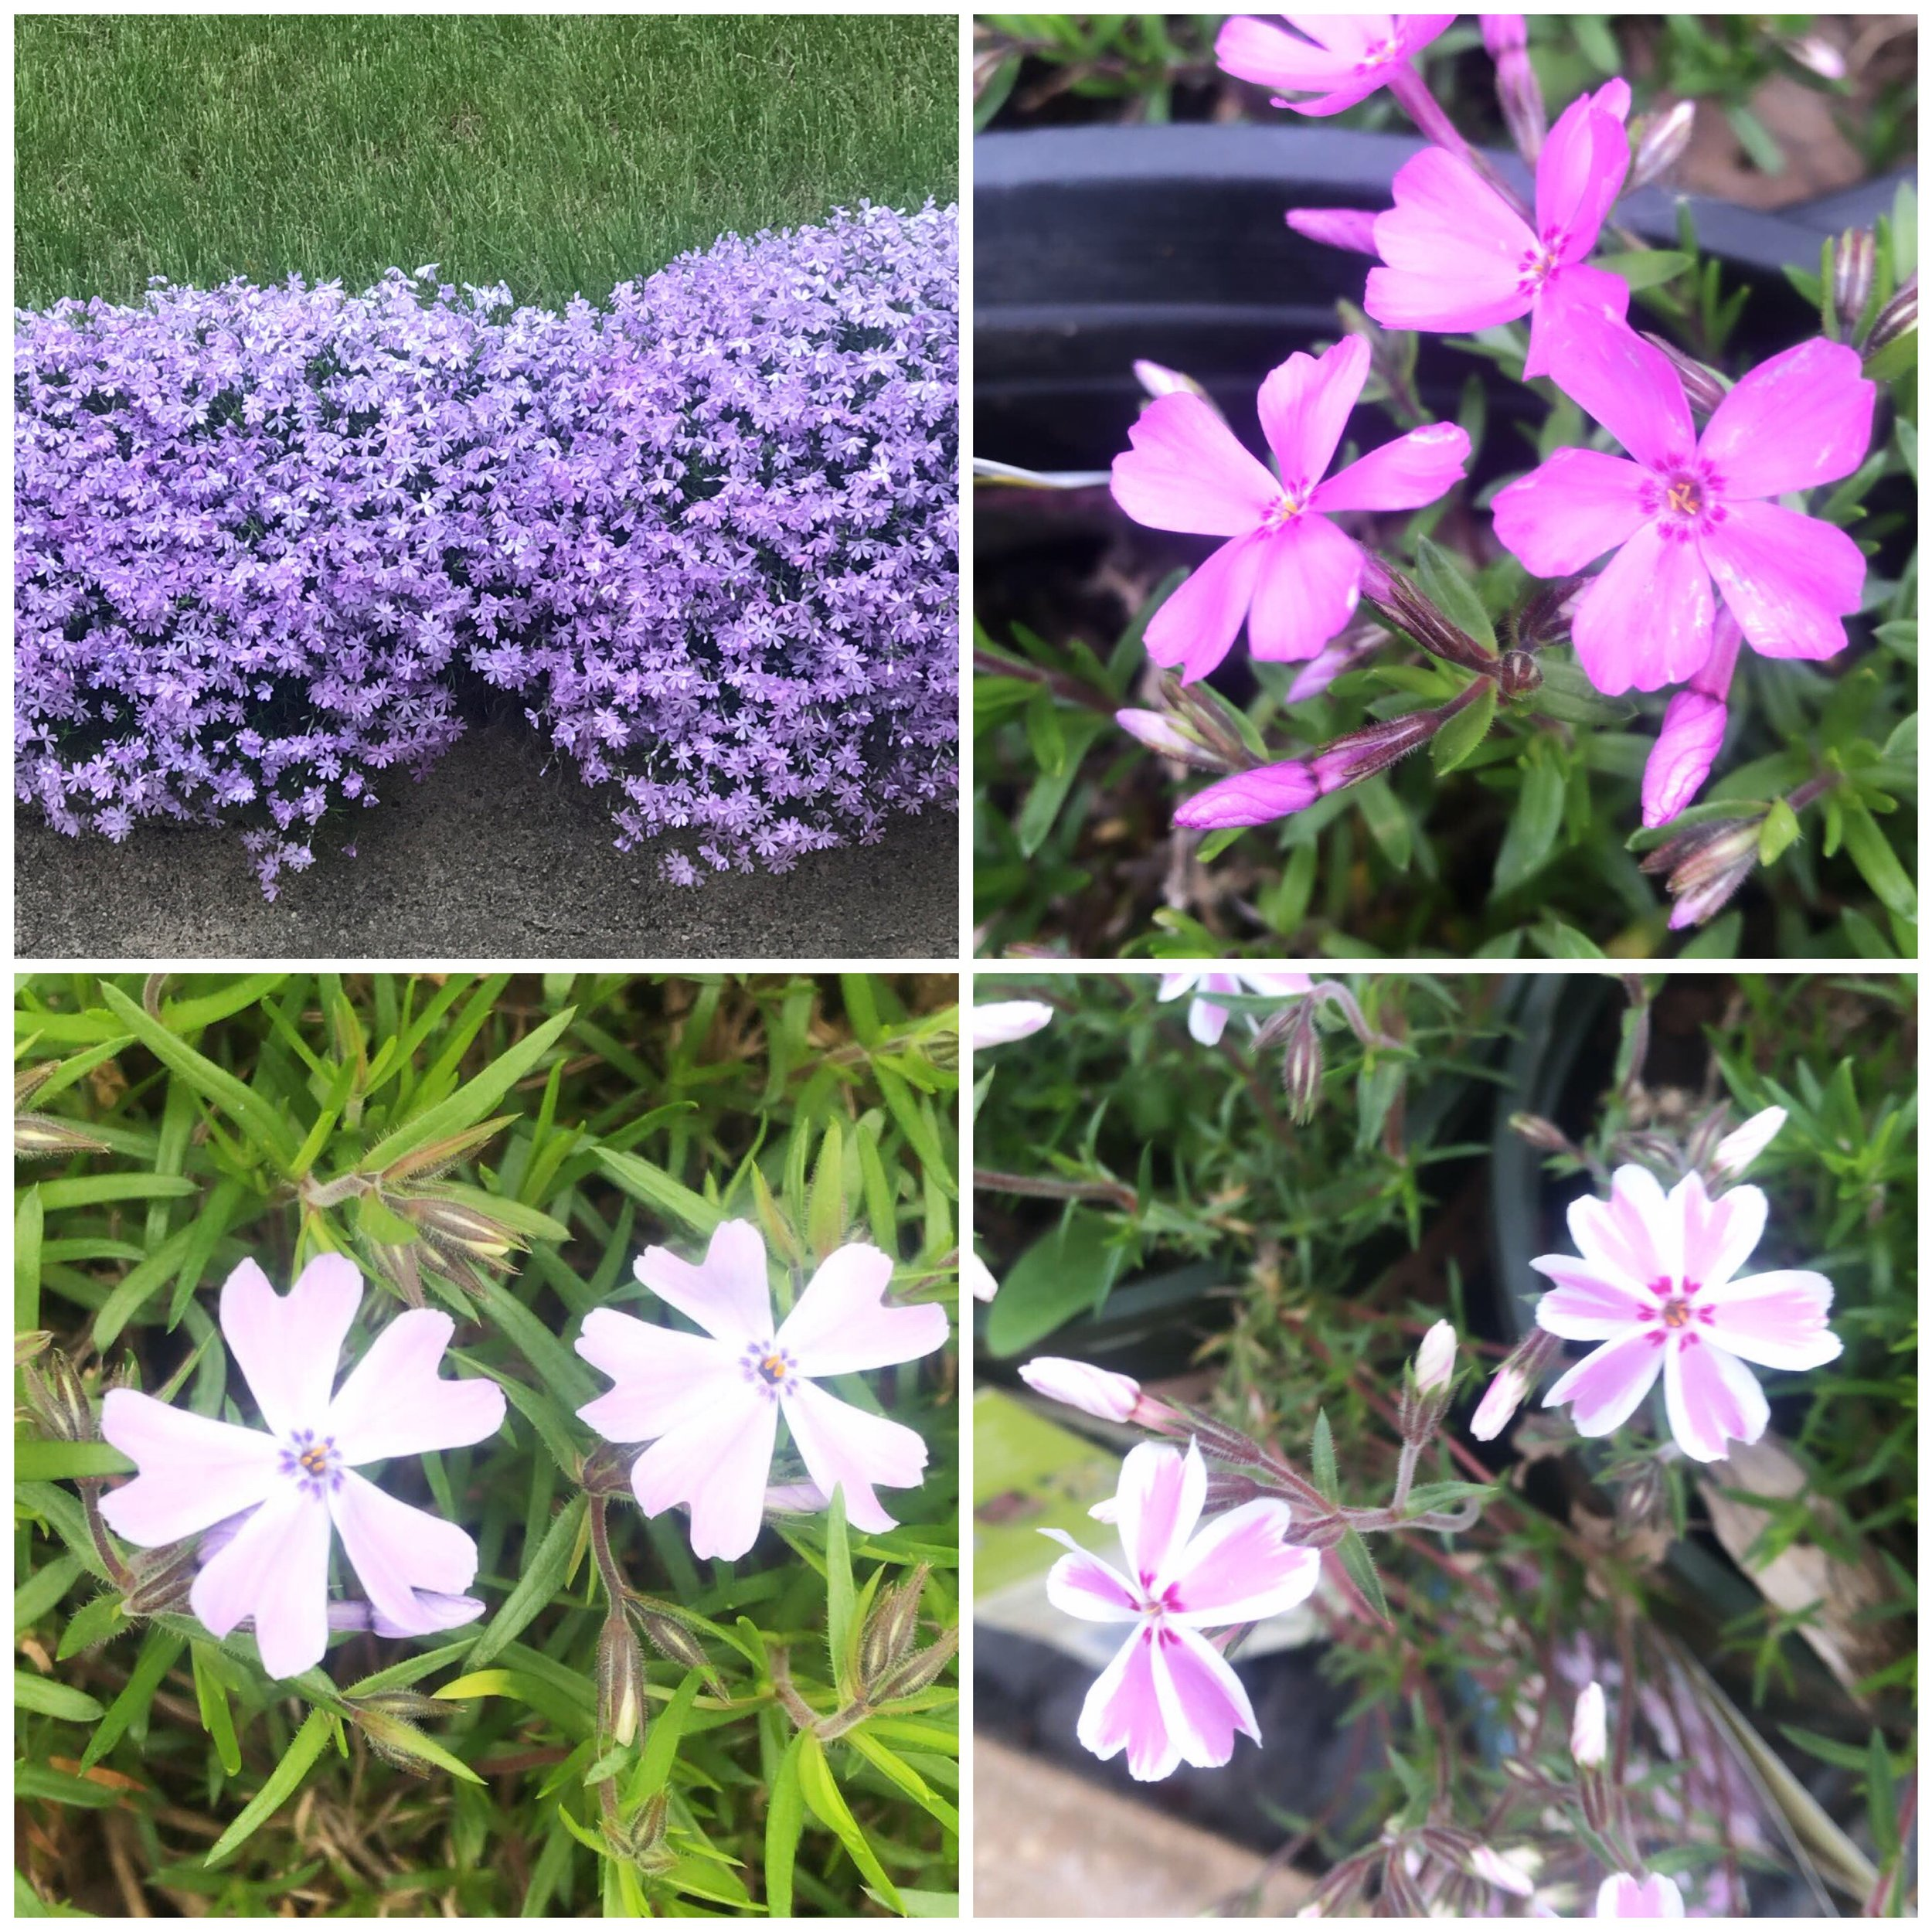 First up, creeping phlox. The top left picture was taken on Main Street in Clear Lake. They are putting on quite the show right now!